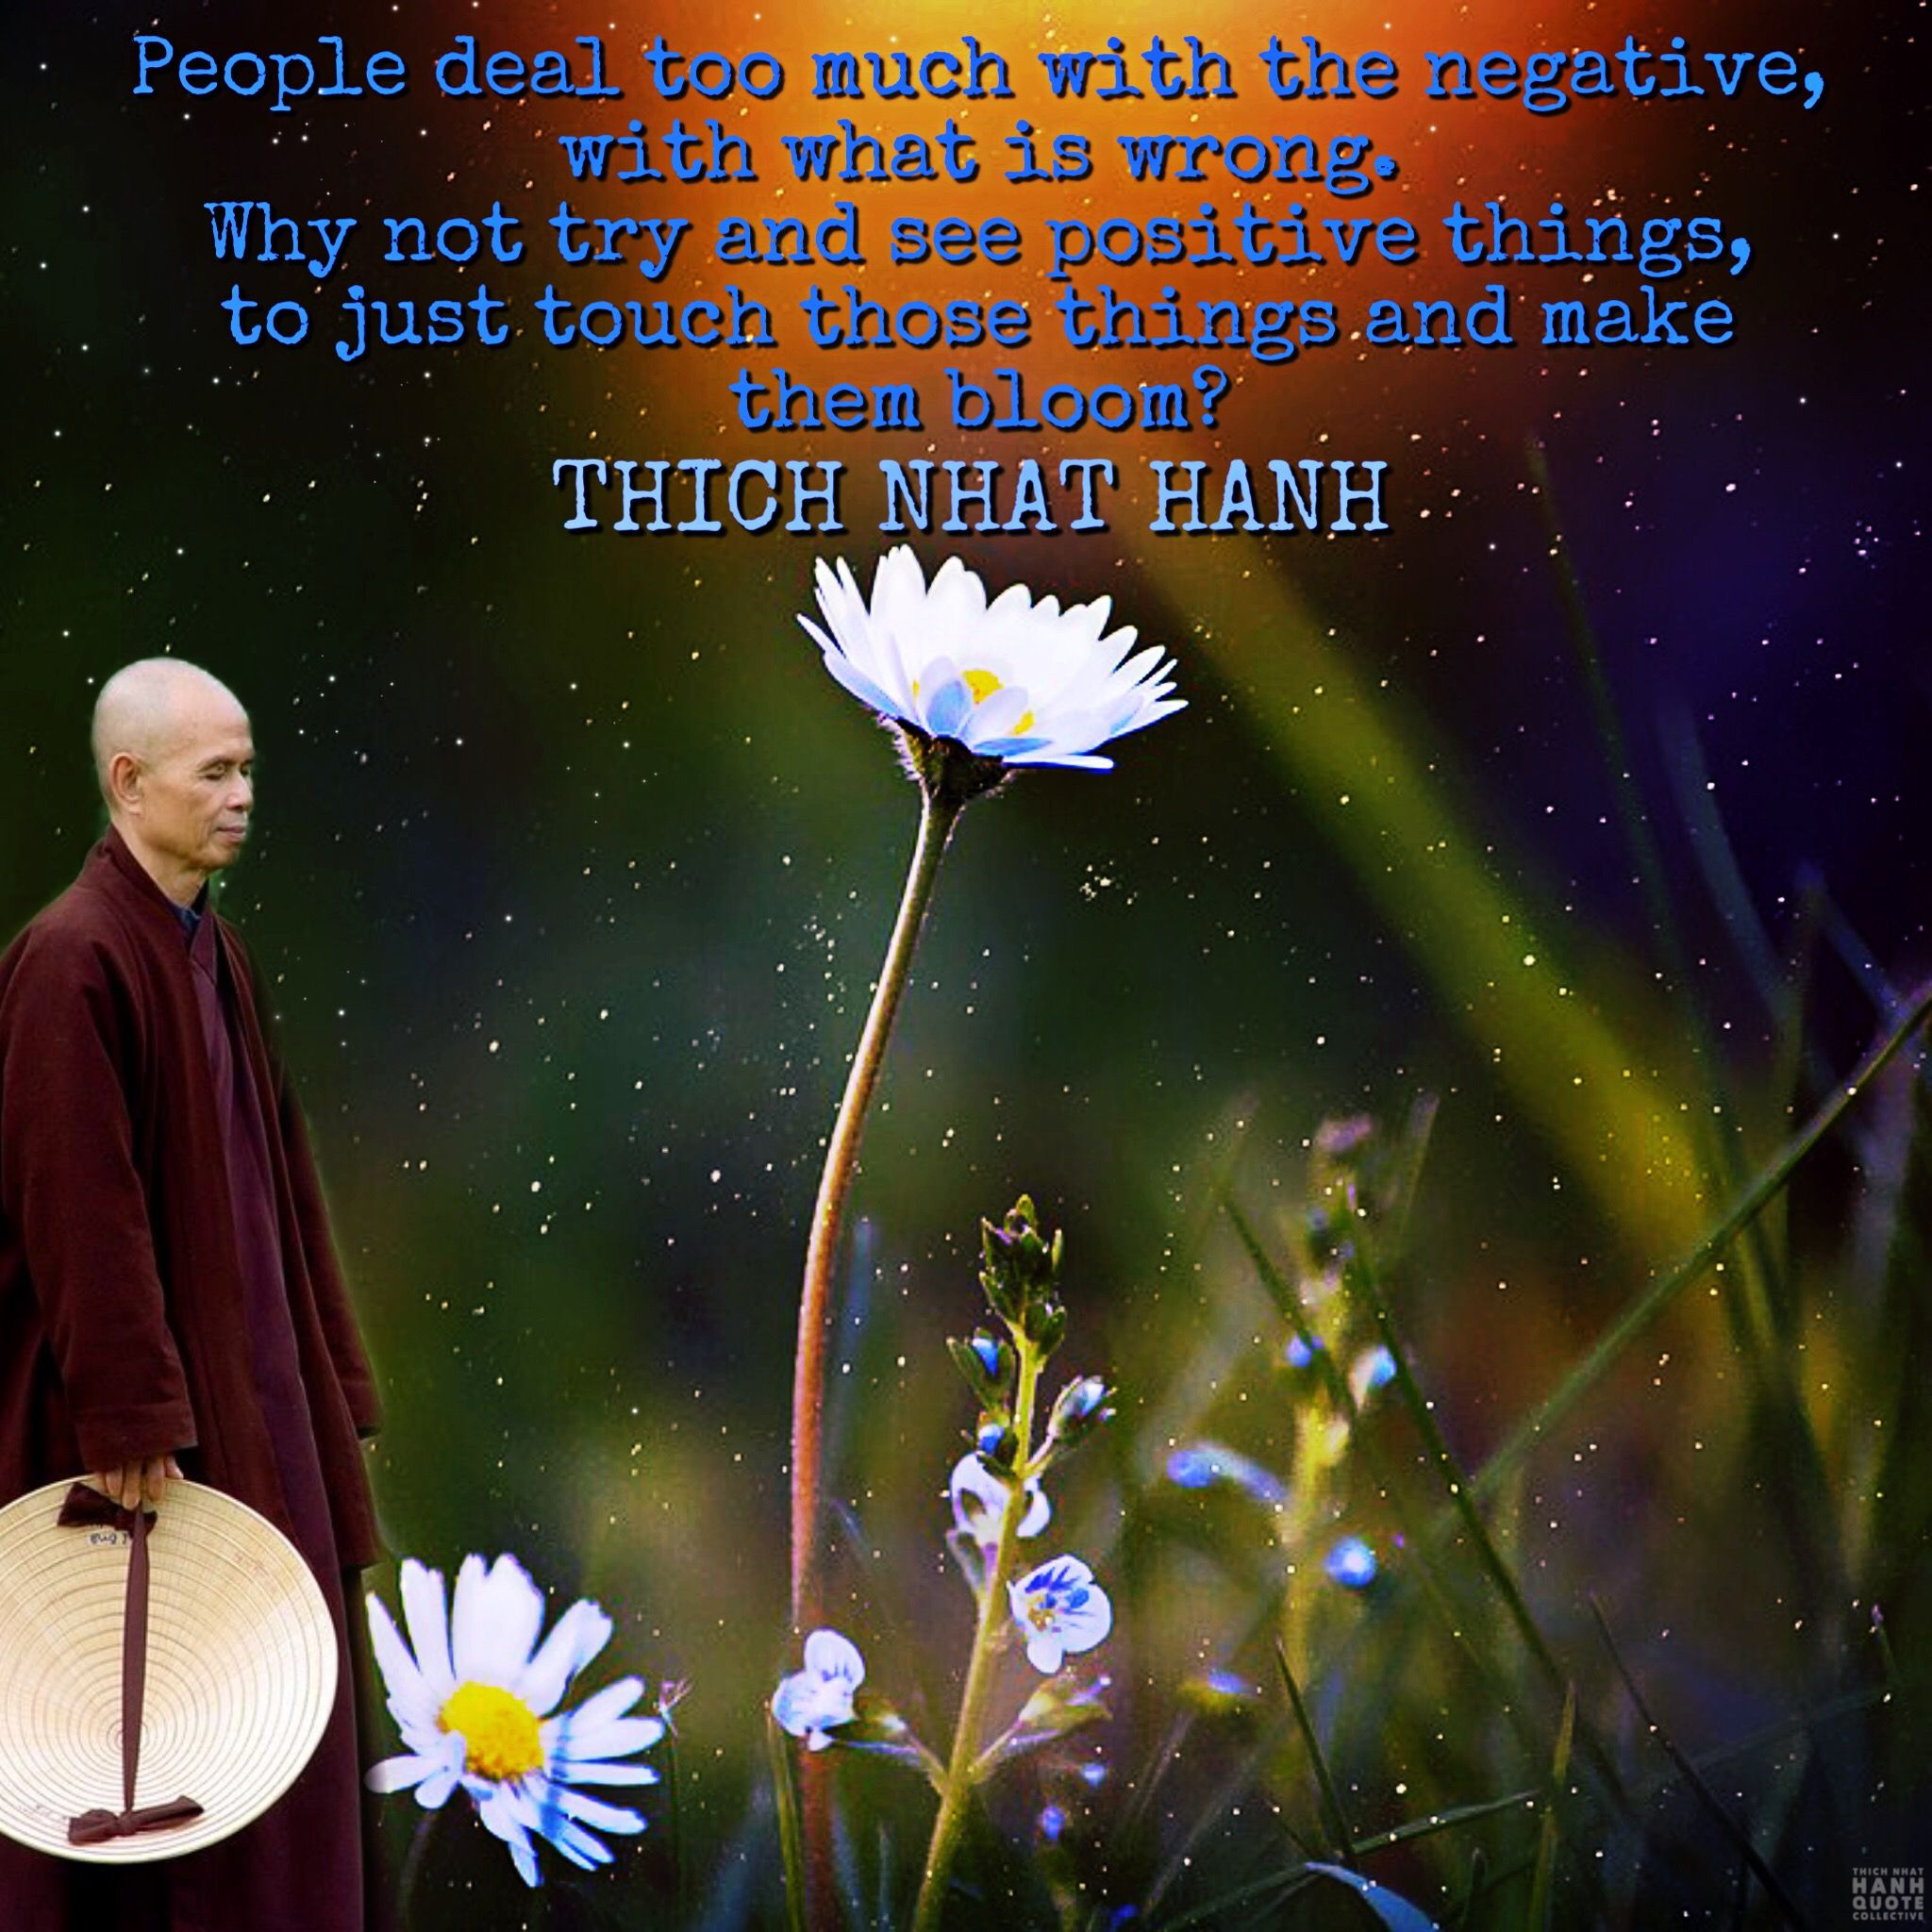 Pin by panyajing on 一行禅师 in 2020 | Thich nhat hanh quotes ...